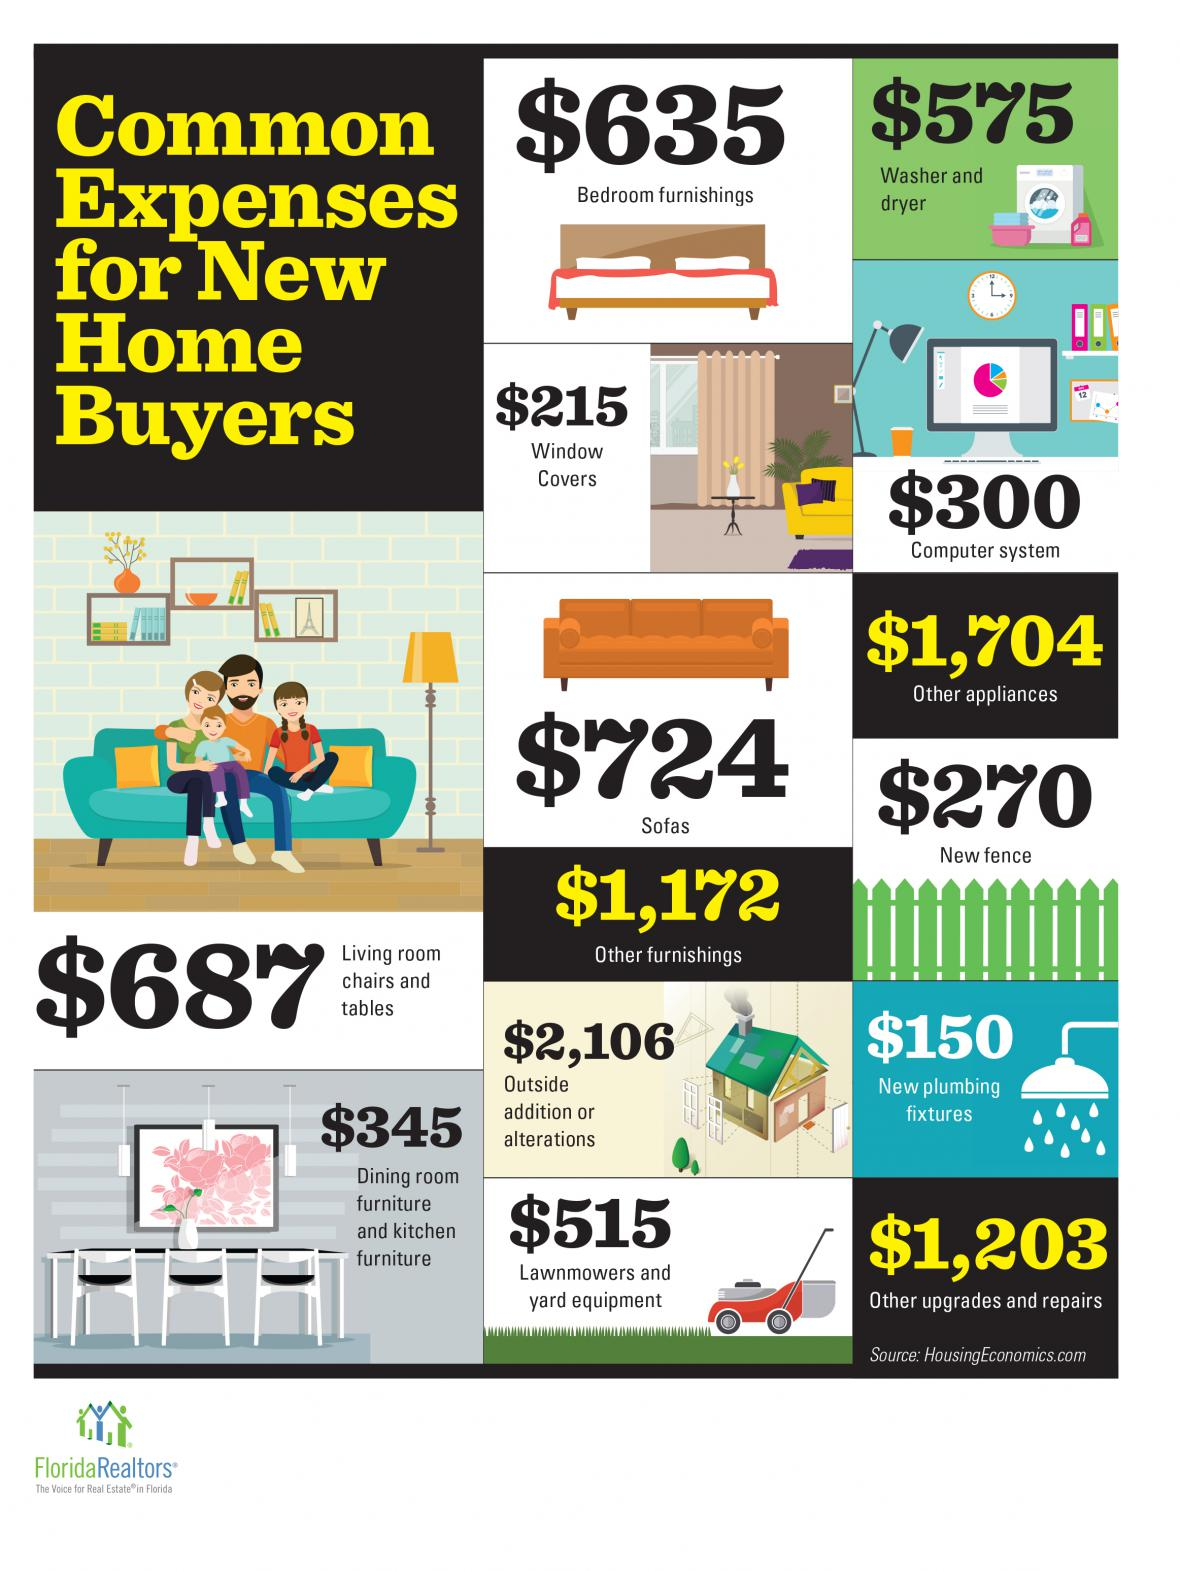 Expenses for New Home Buyers